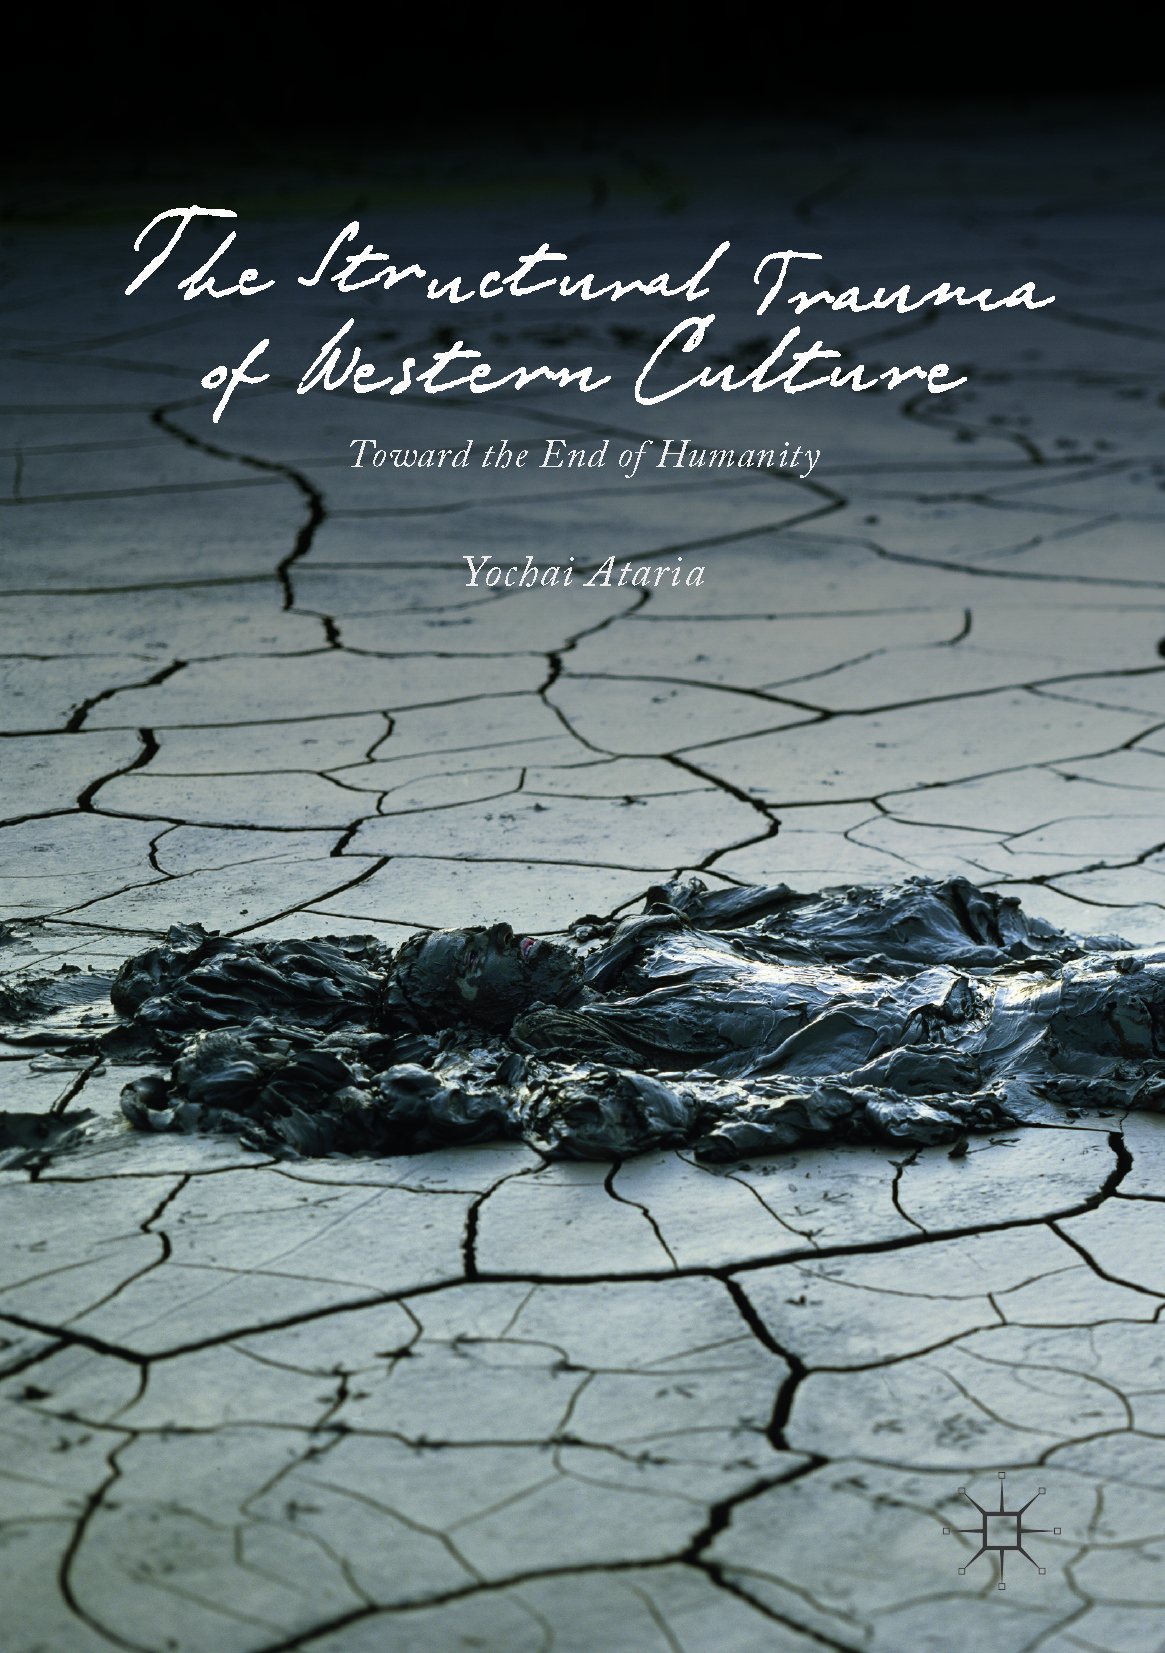 Ataria, Yochai - The Structural Trauma of Western Culture, ebook